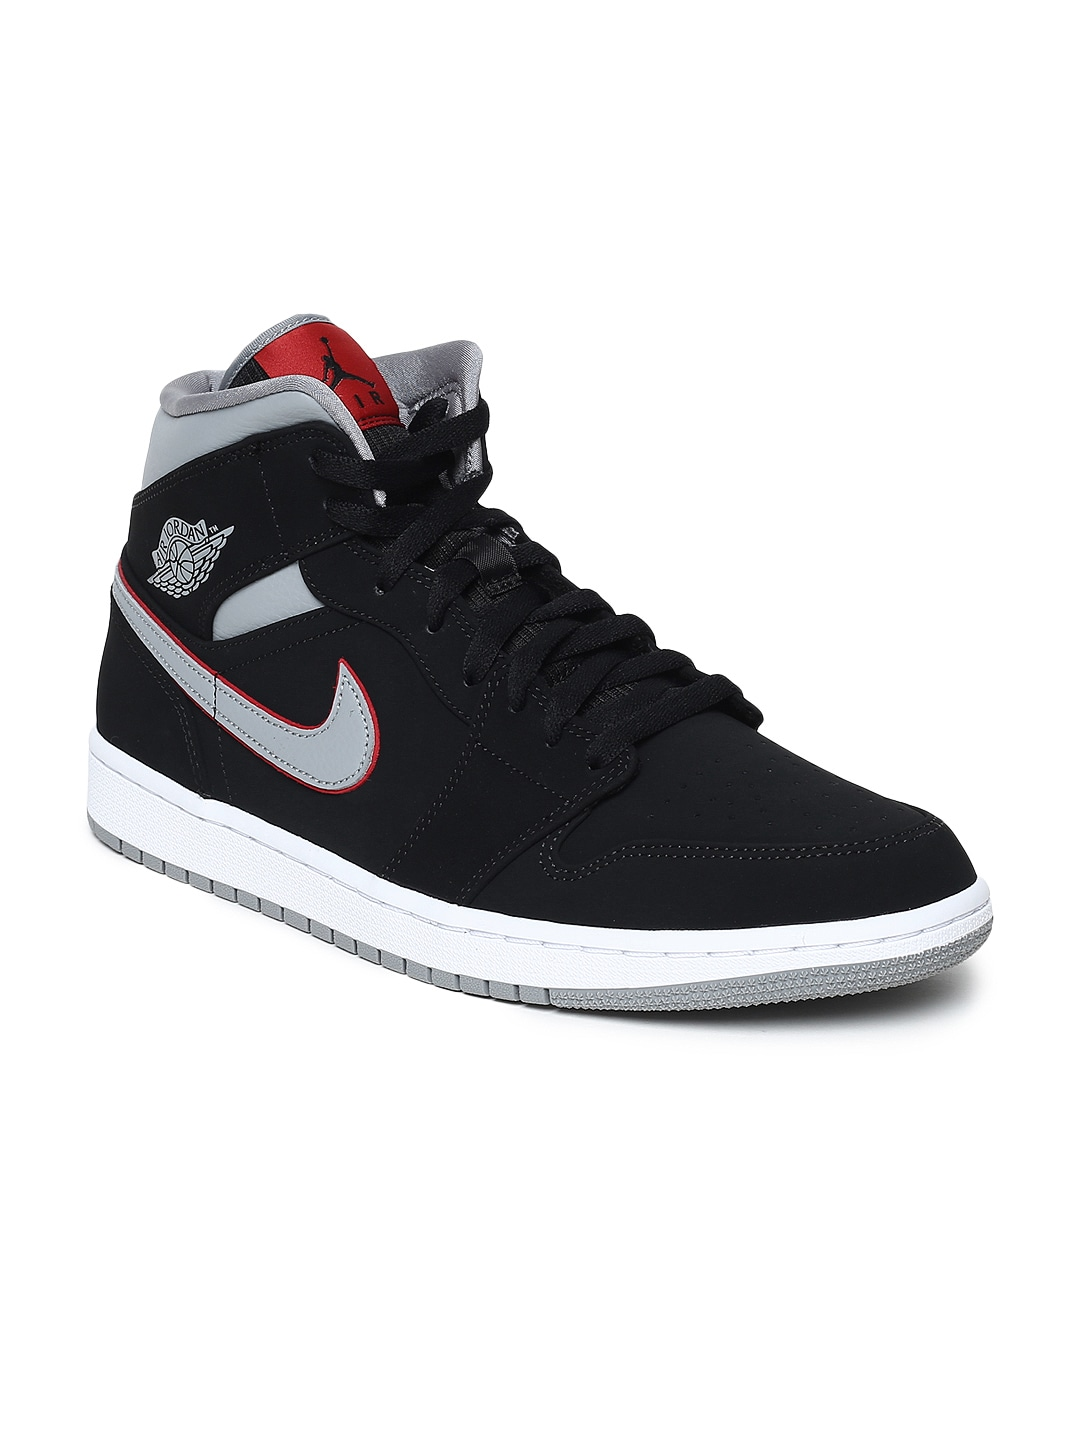 5da1804b045 Nike Shoes - Buy Nike Shoes for Men